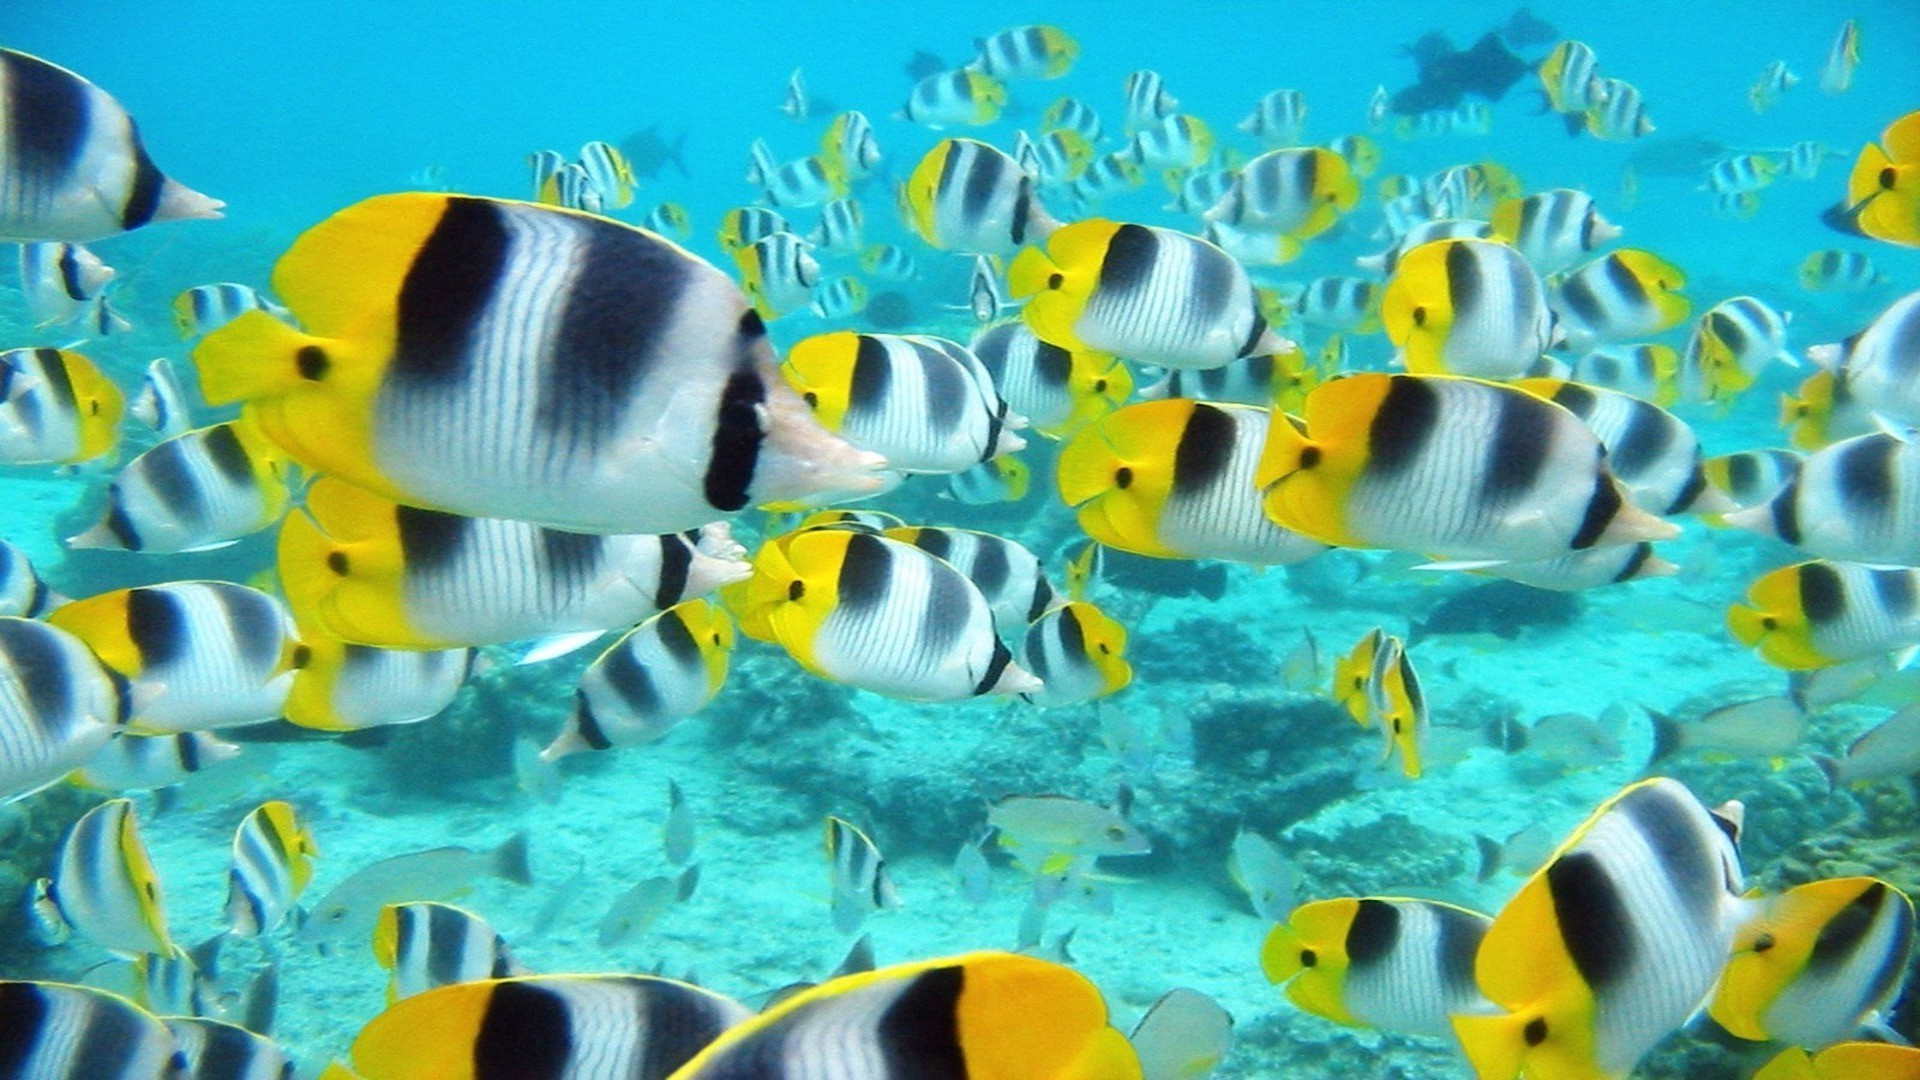 animals underwater fish coral water tropical swimming reef nature sea ocean aquarium wildlife animal deep turquoise angelfish aquatic exotic